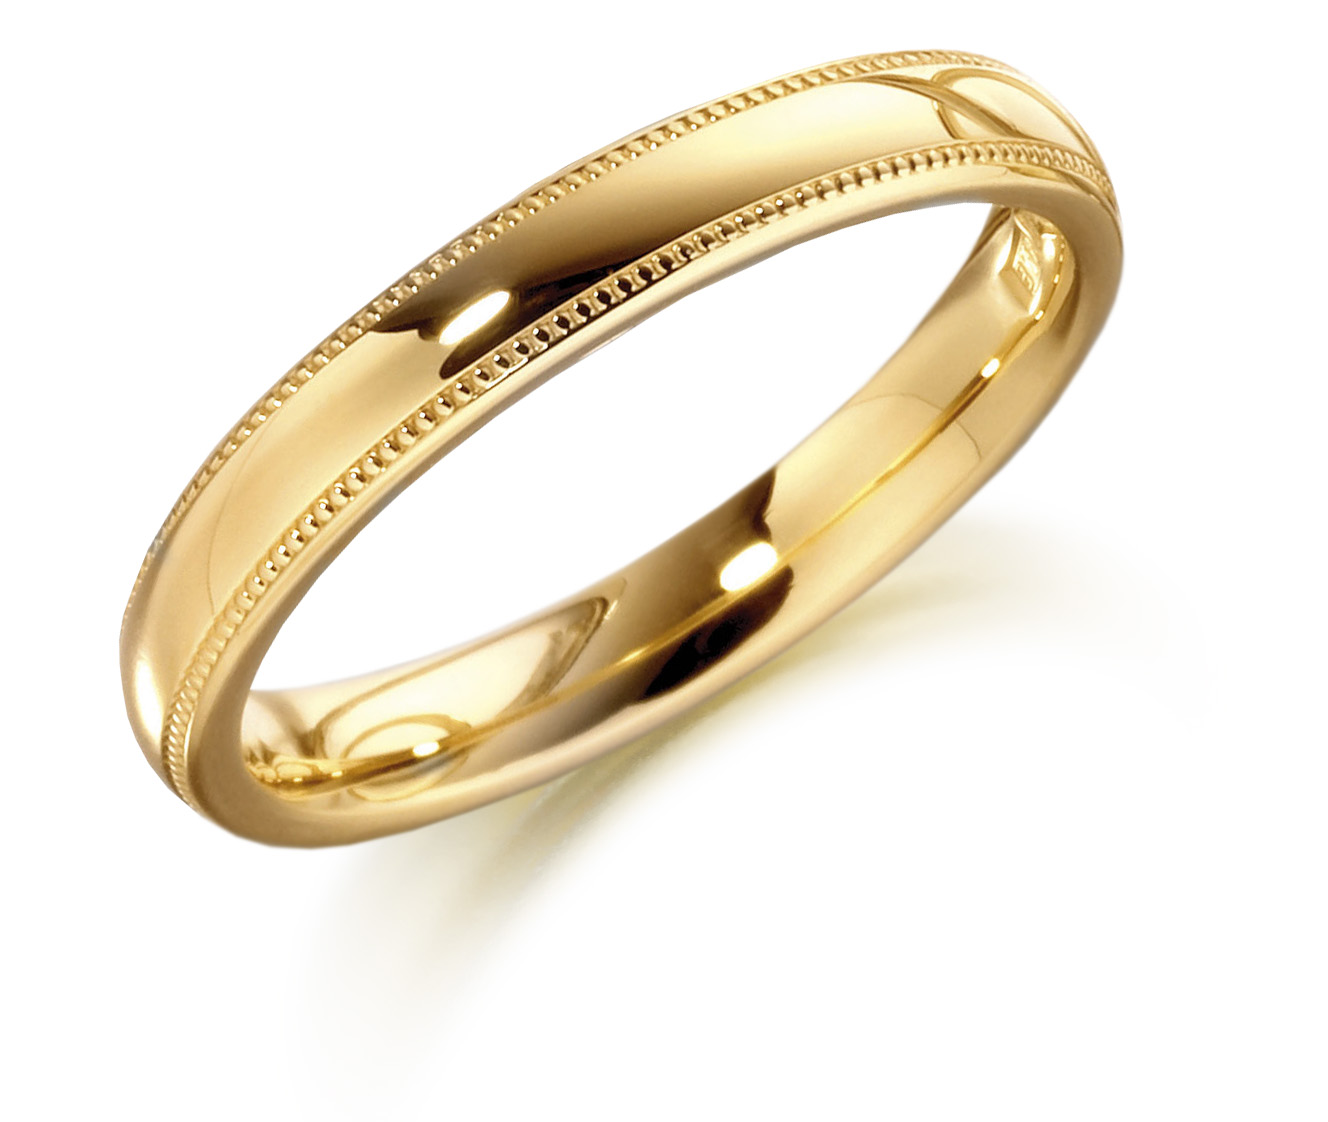 6mm 9ct Yellow Gold Wedding Ring-0